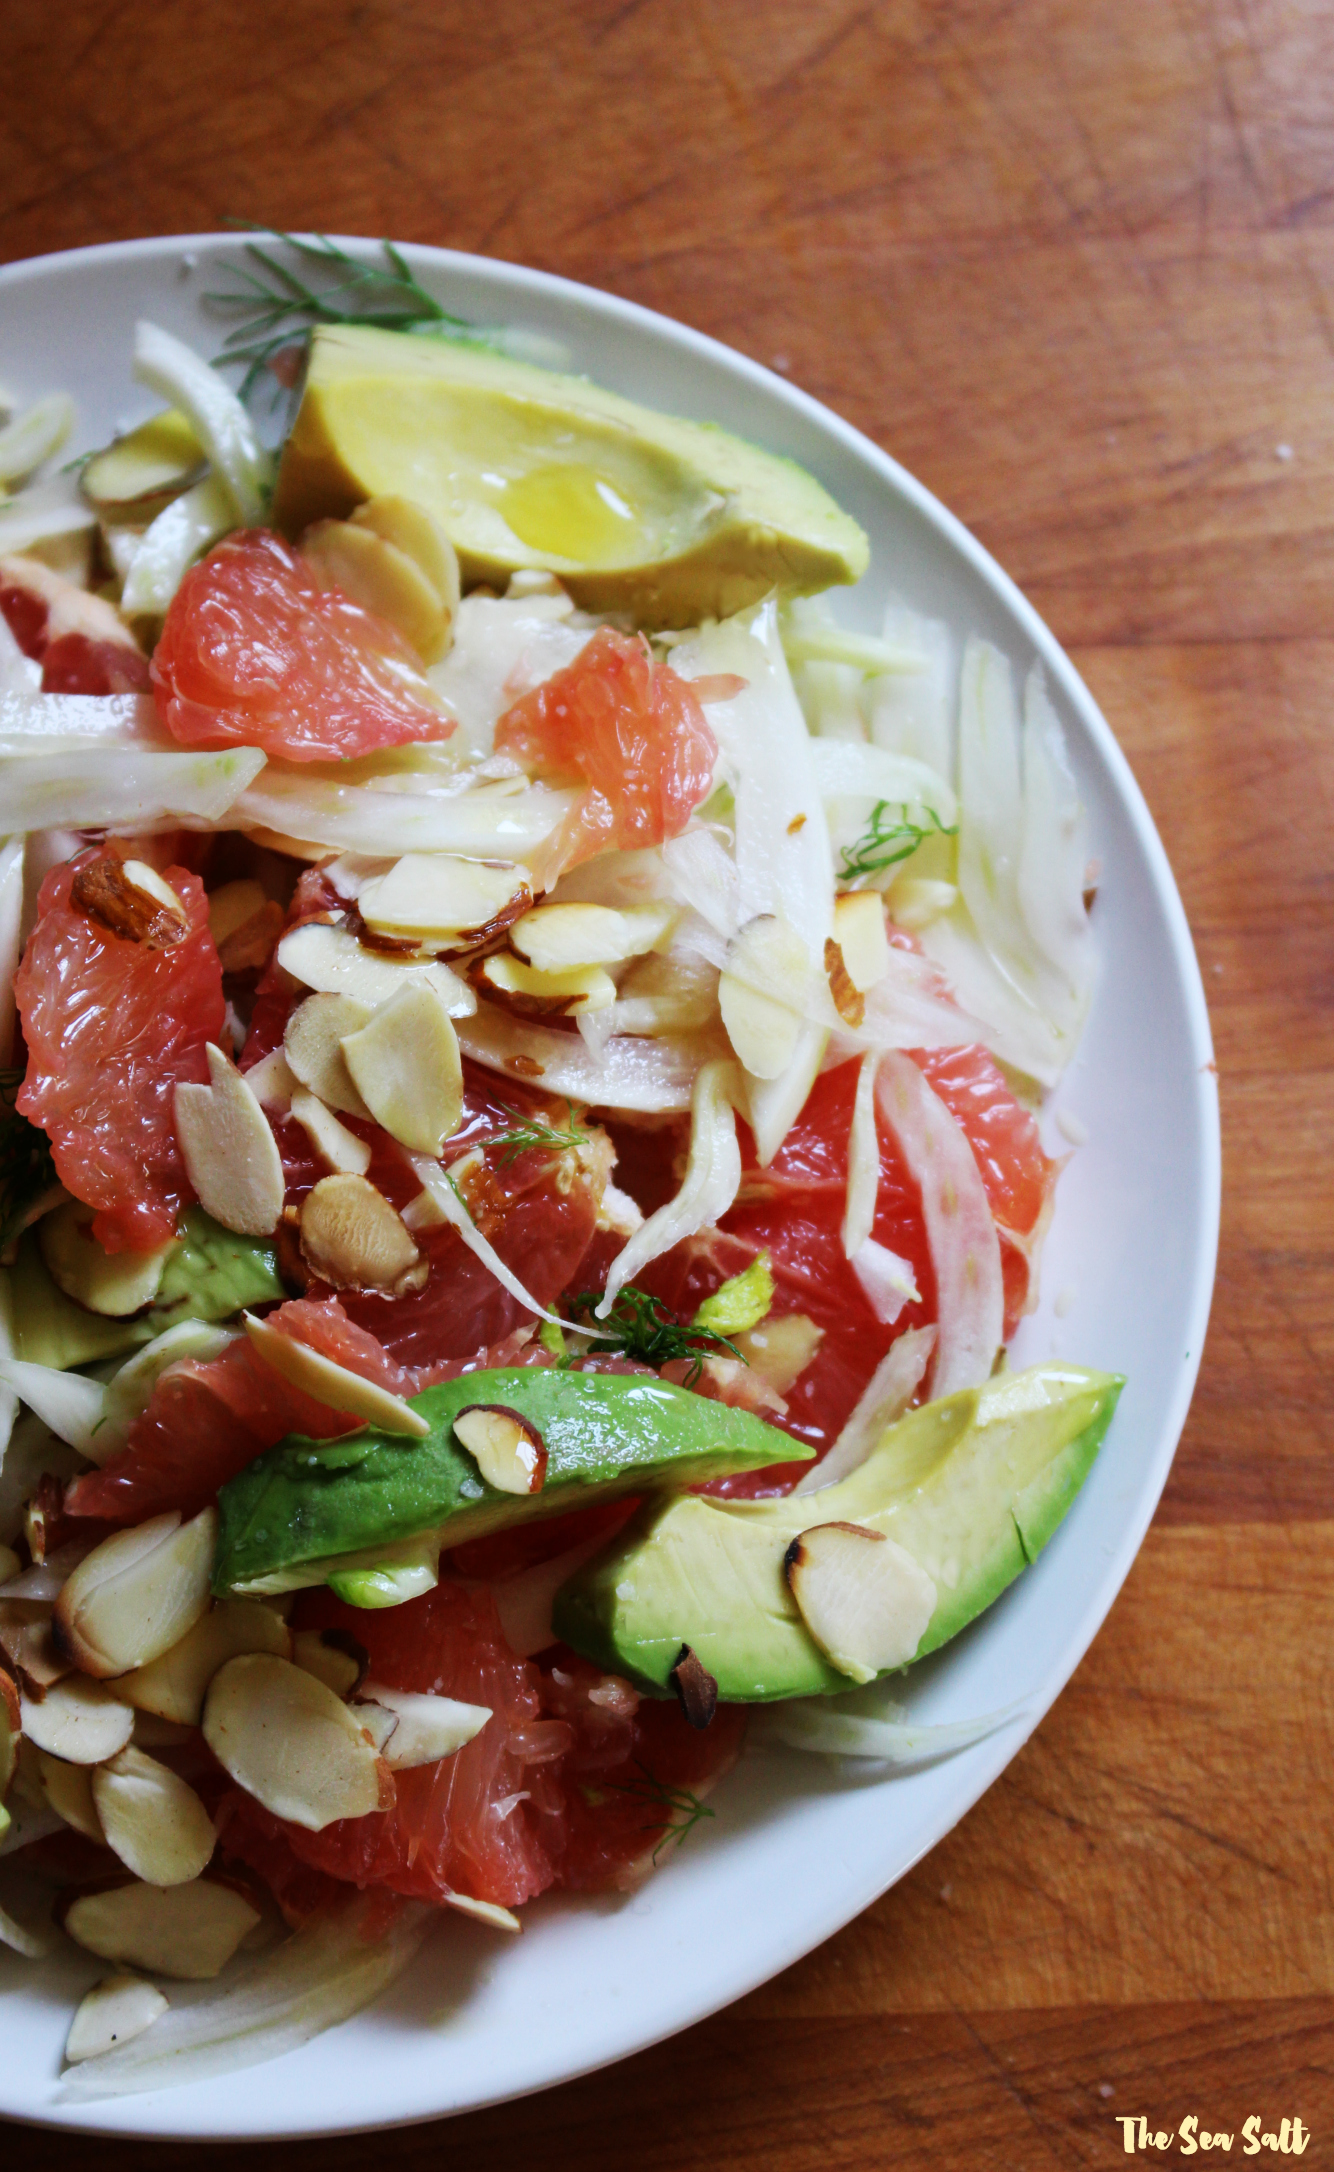 Fennel Salad with Avocado, Grapefruit and Almonds